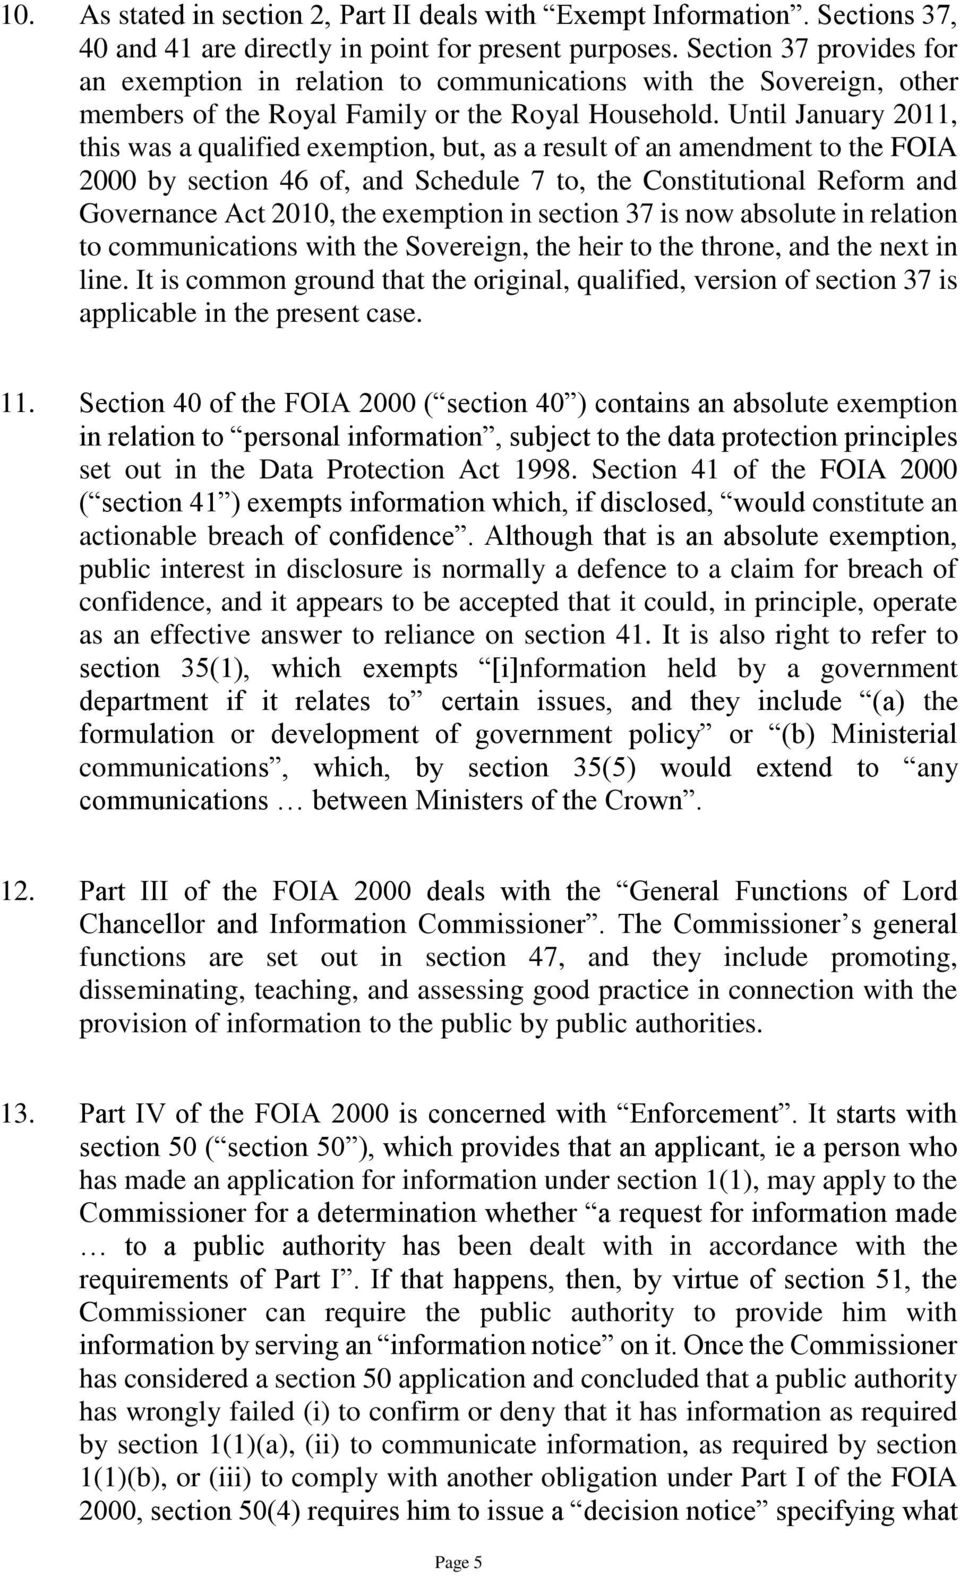 Until January 2011, this was a qualified exemption, but, as a result of an amendment to the FOIA 2000 by section 46 of, and Schedule 7 to, the Constitutional Reform and Governance Act 2010, the